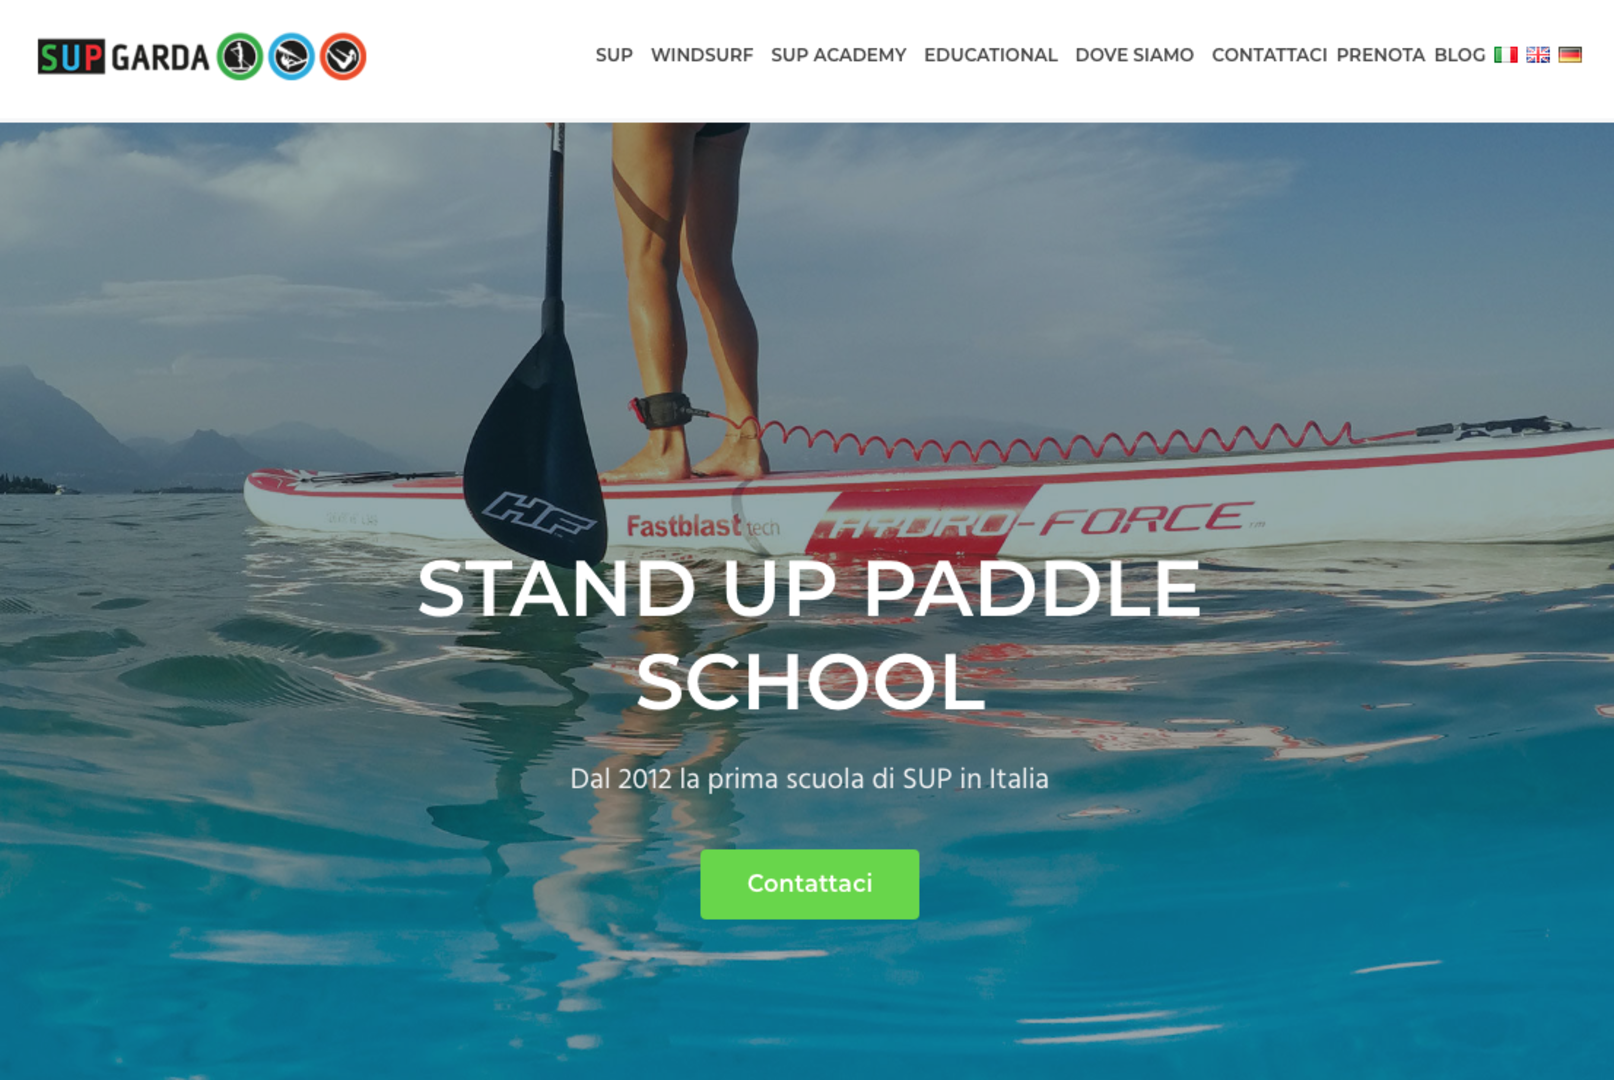 Stand up paddle school Supgarda